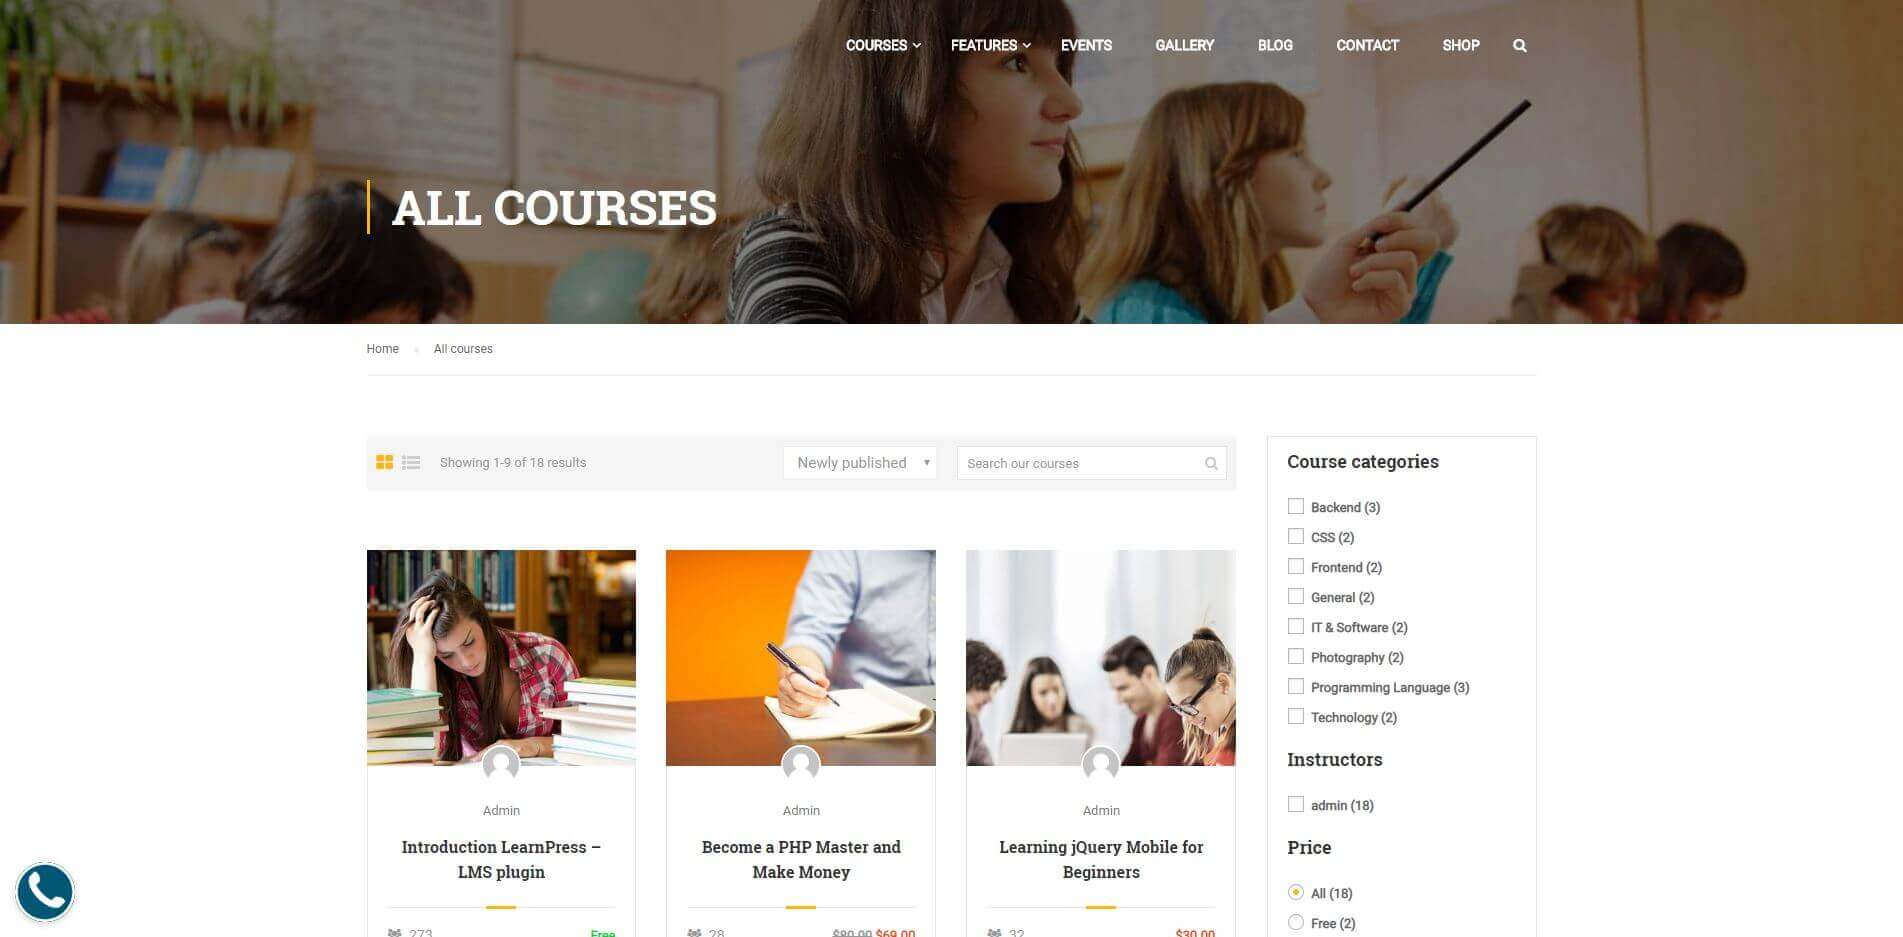 Education Website Courses Page